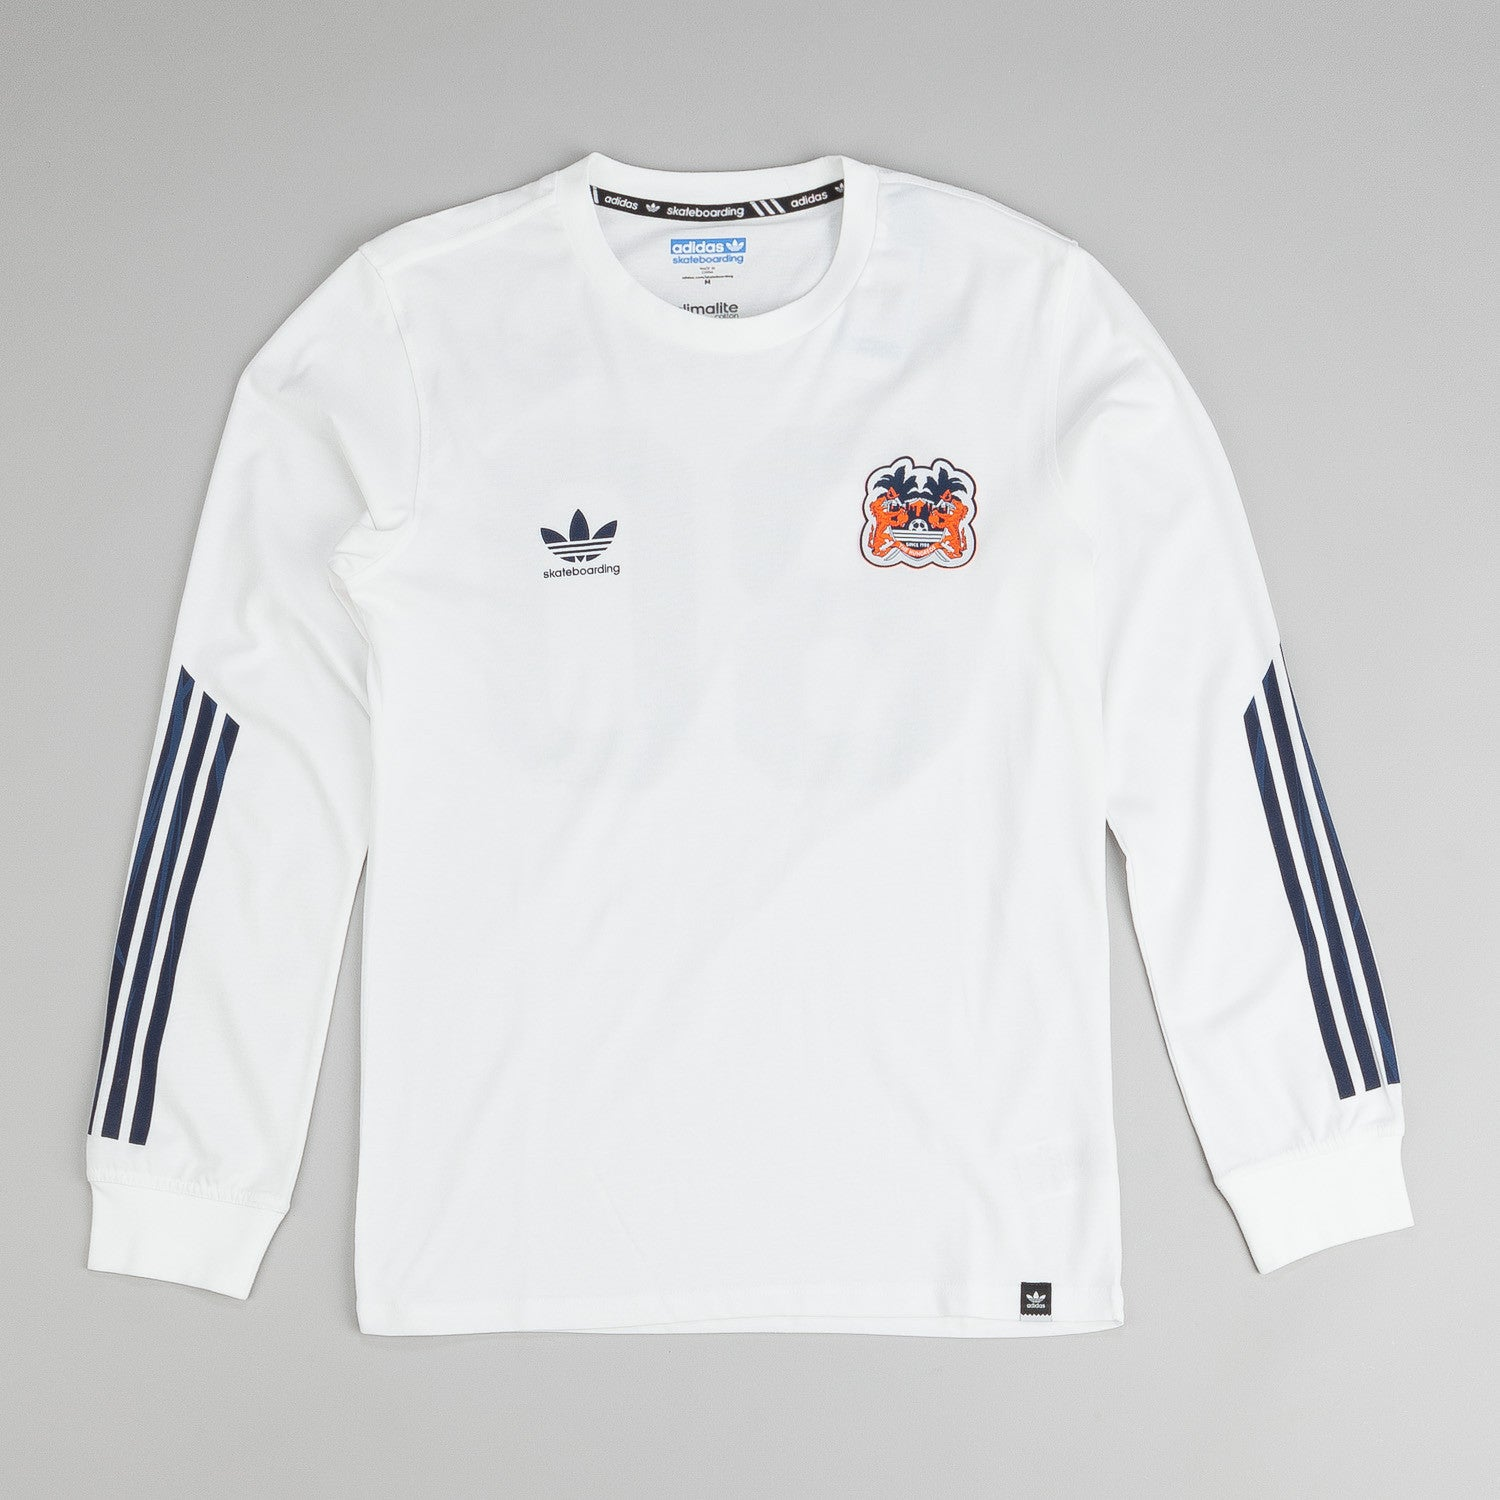 Adidas X The Hundreds Long Sleeve T-Shirt